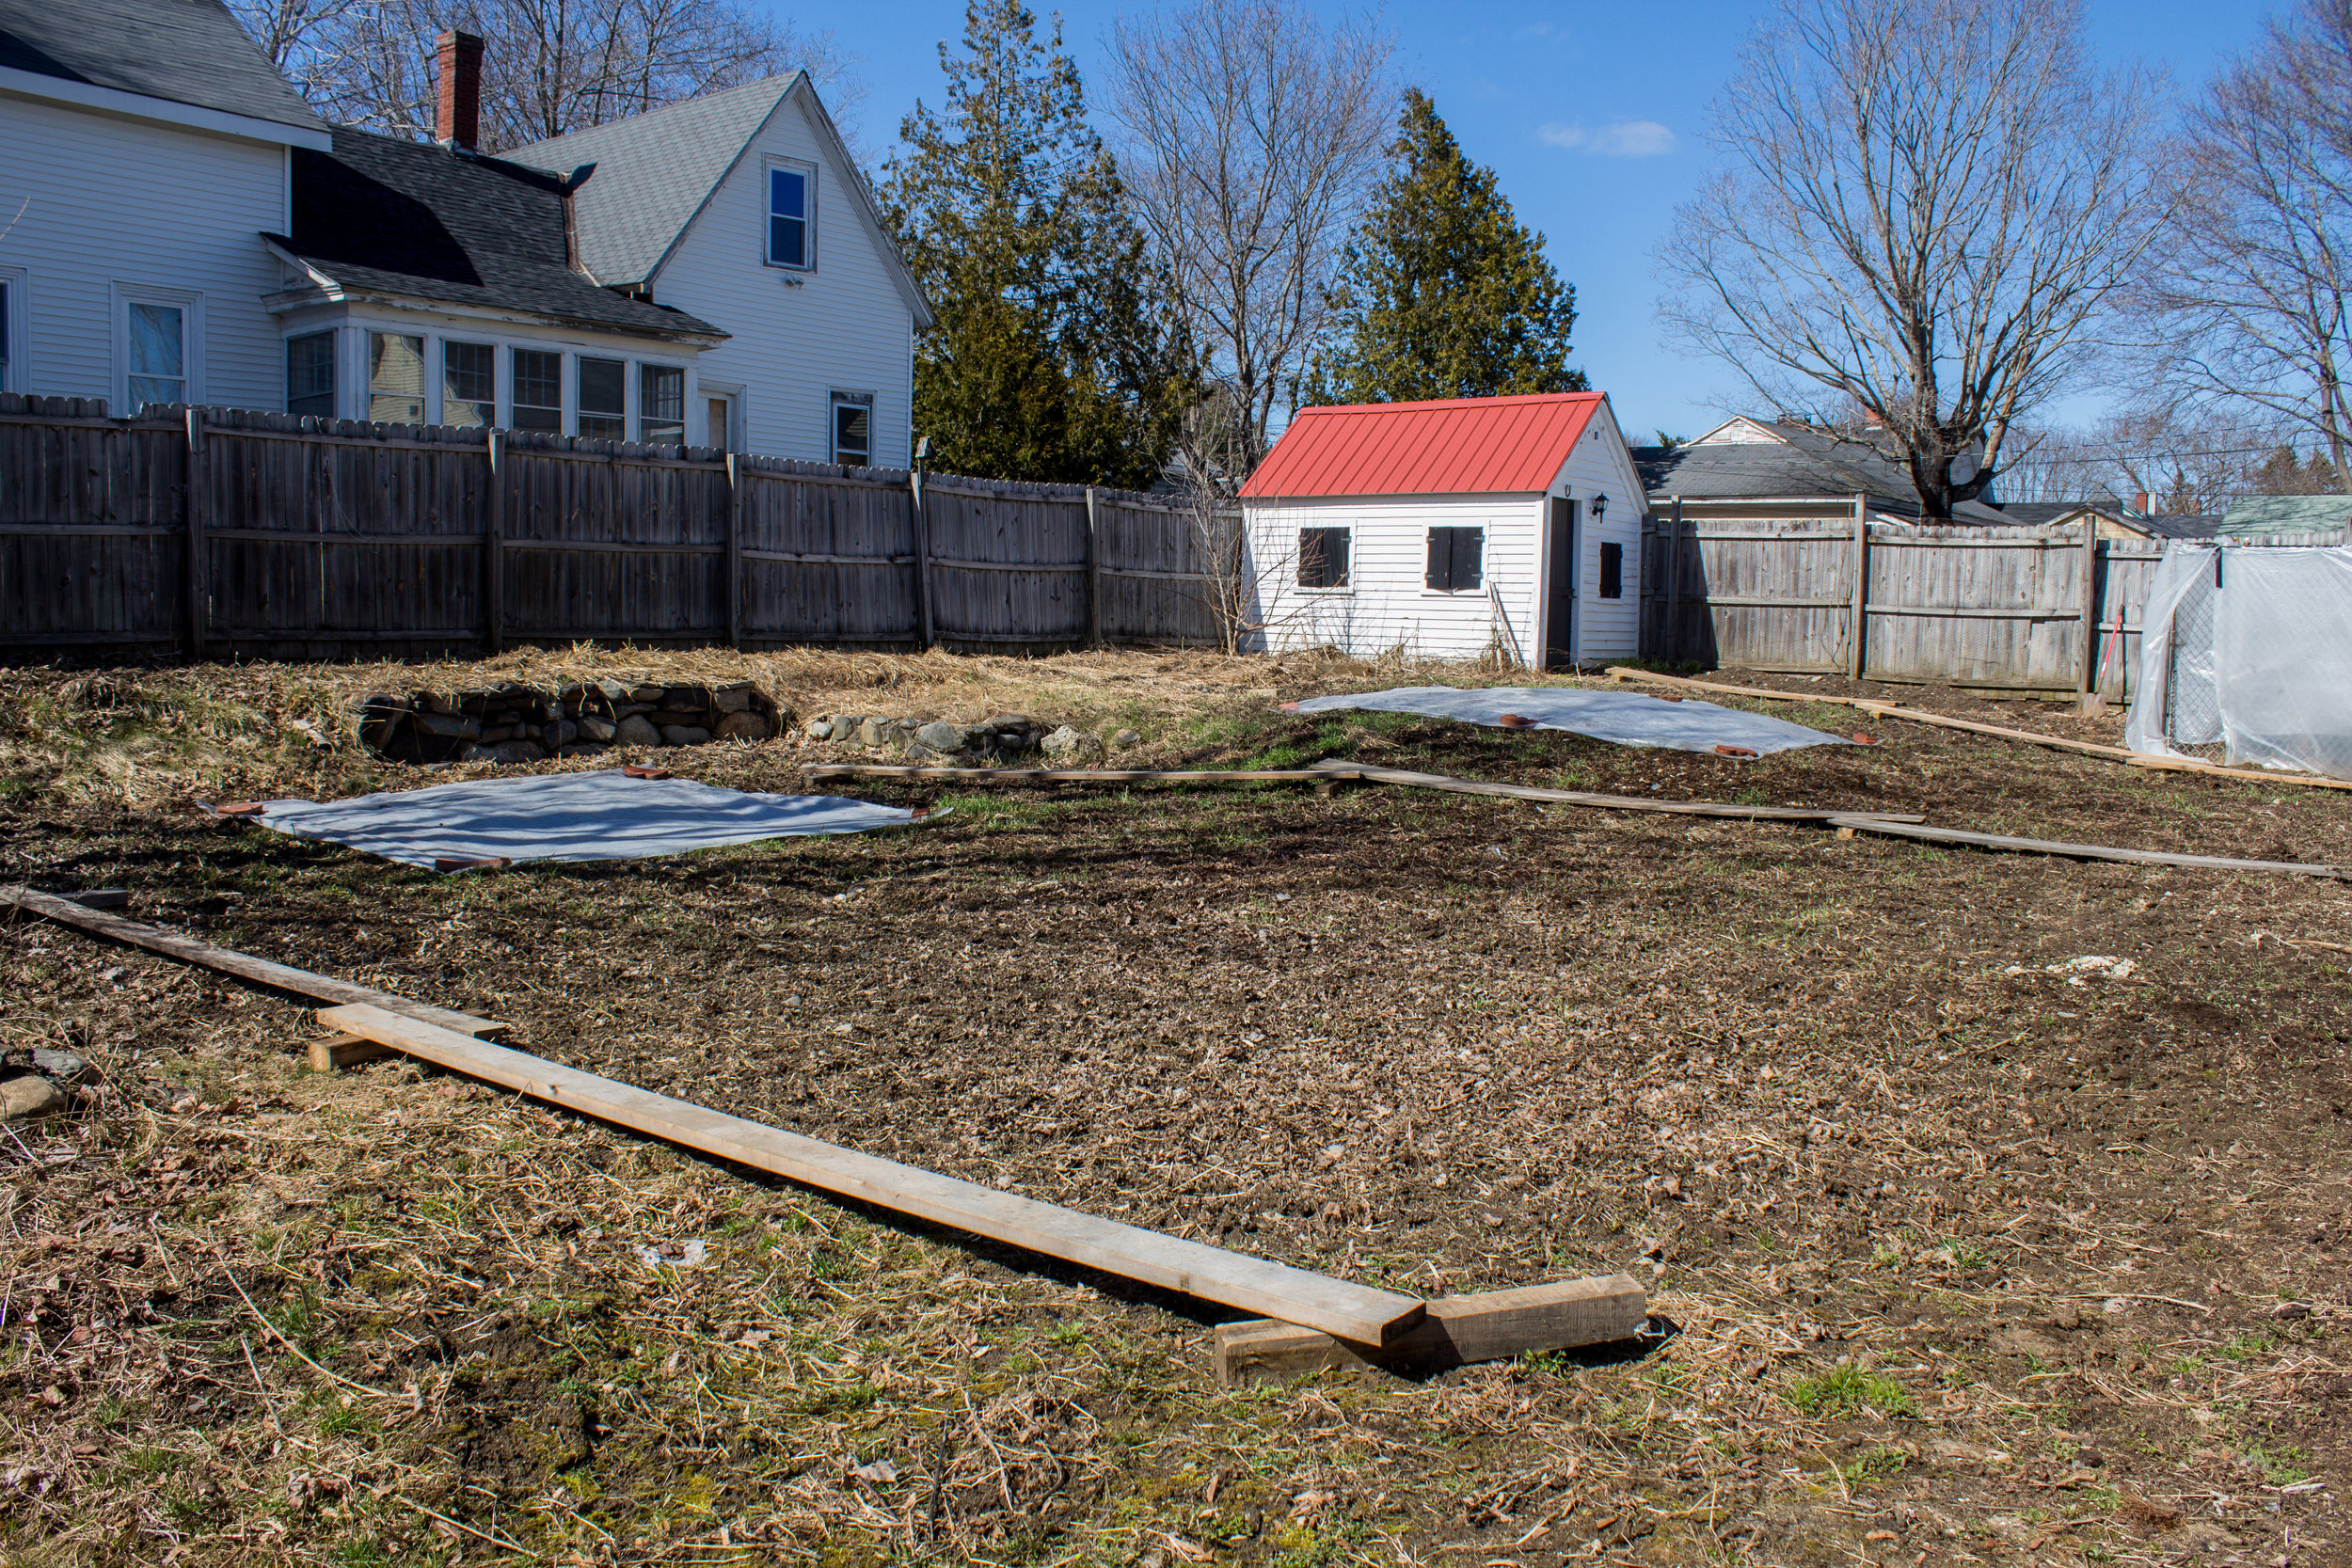 This is my pumpkin patch at home. I just spread sulfur on it to lower the pH (per my soil test's recommendations). I also have clear plastic placed down to warm up the soil, and compaction boards to prevent me from compacting the soil when I walk through my patch. The winter rye didn't grow as much as I hoped, so next year I will plant more and plant it earlier in the fall.